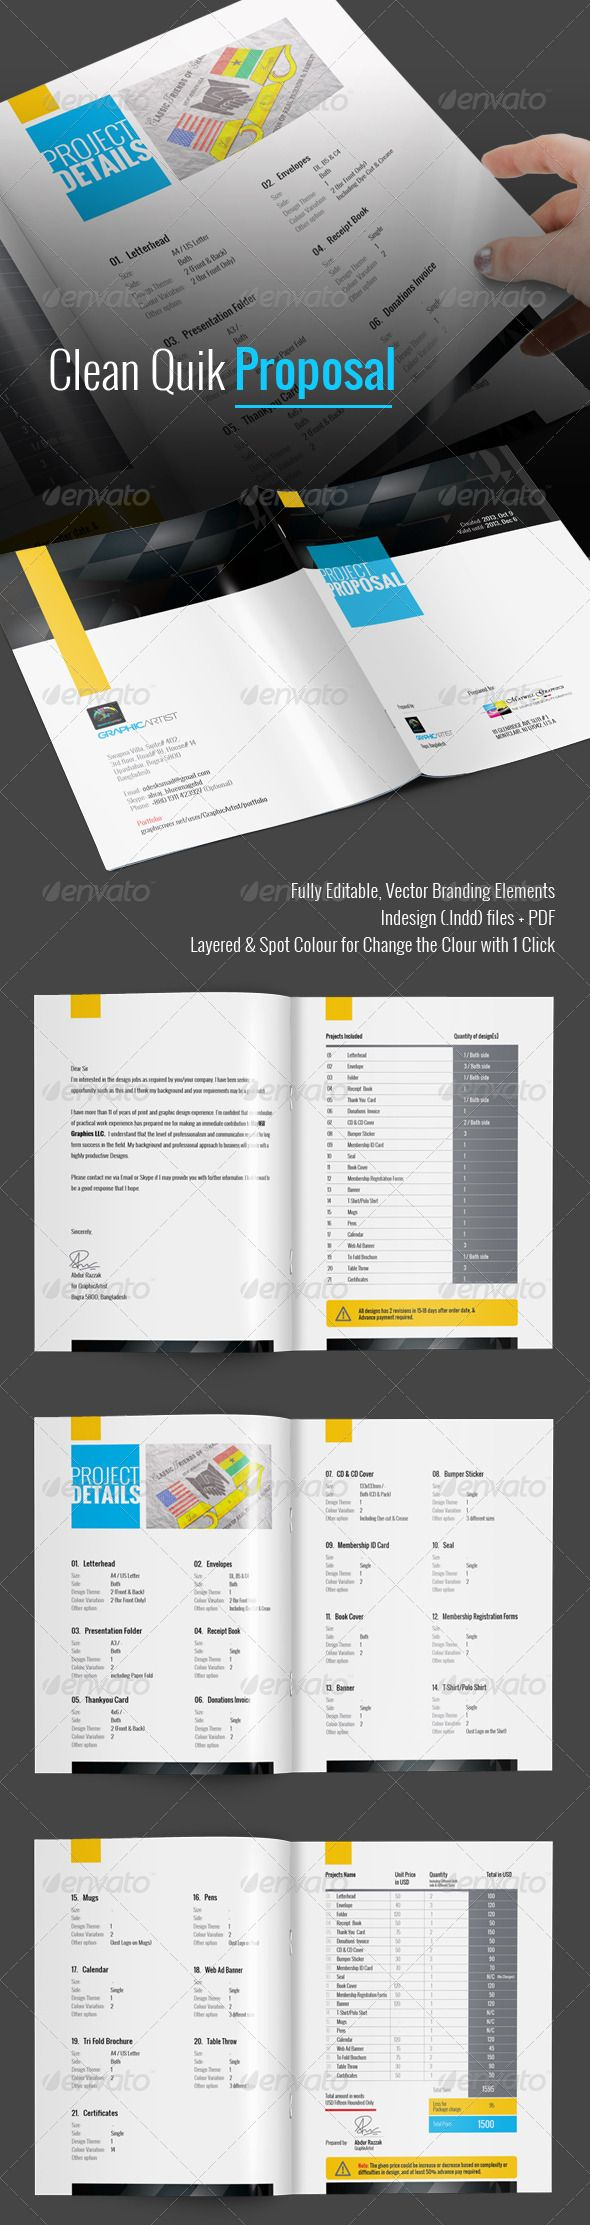 Clean Quik Proposal Creative Clean Corporate Business Project Proposal For Quick Use 8 Pages P Project Proposal Template Business Proposal Proposal Templates